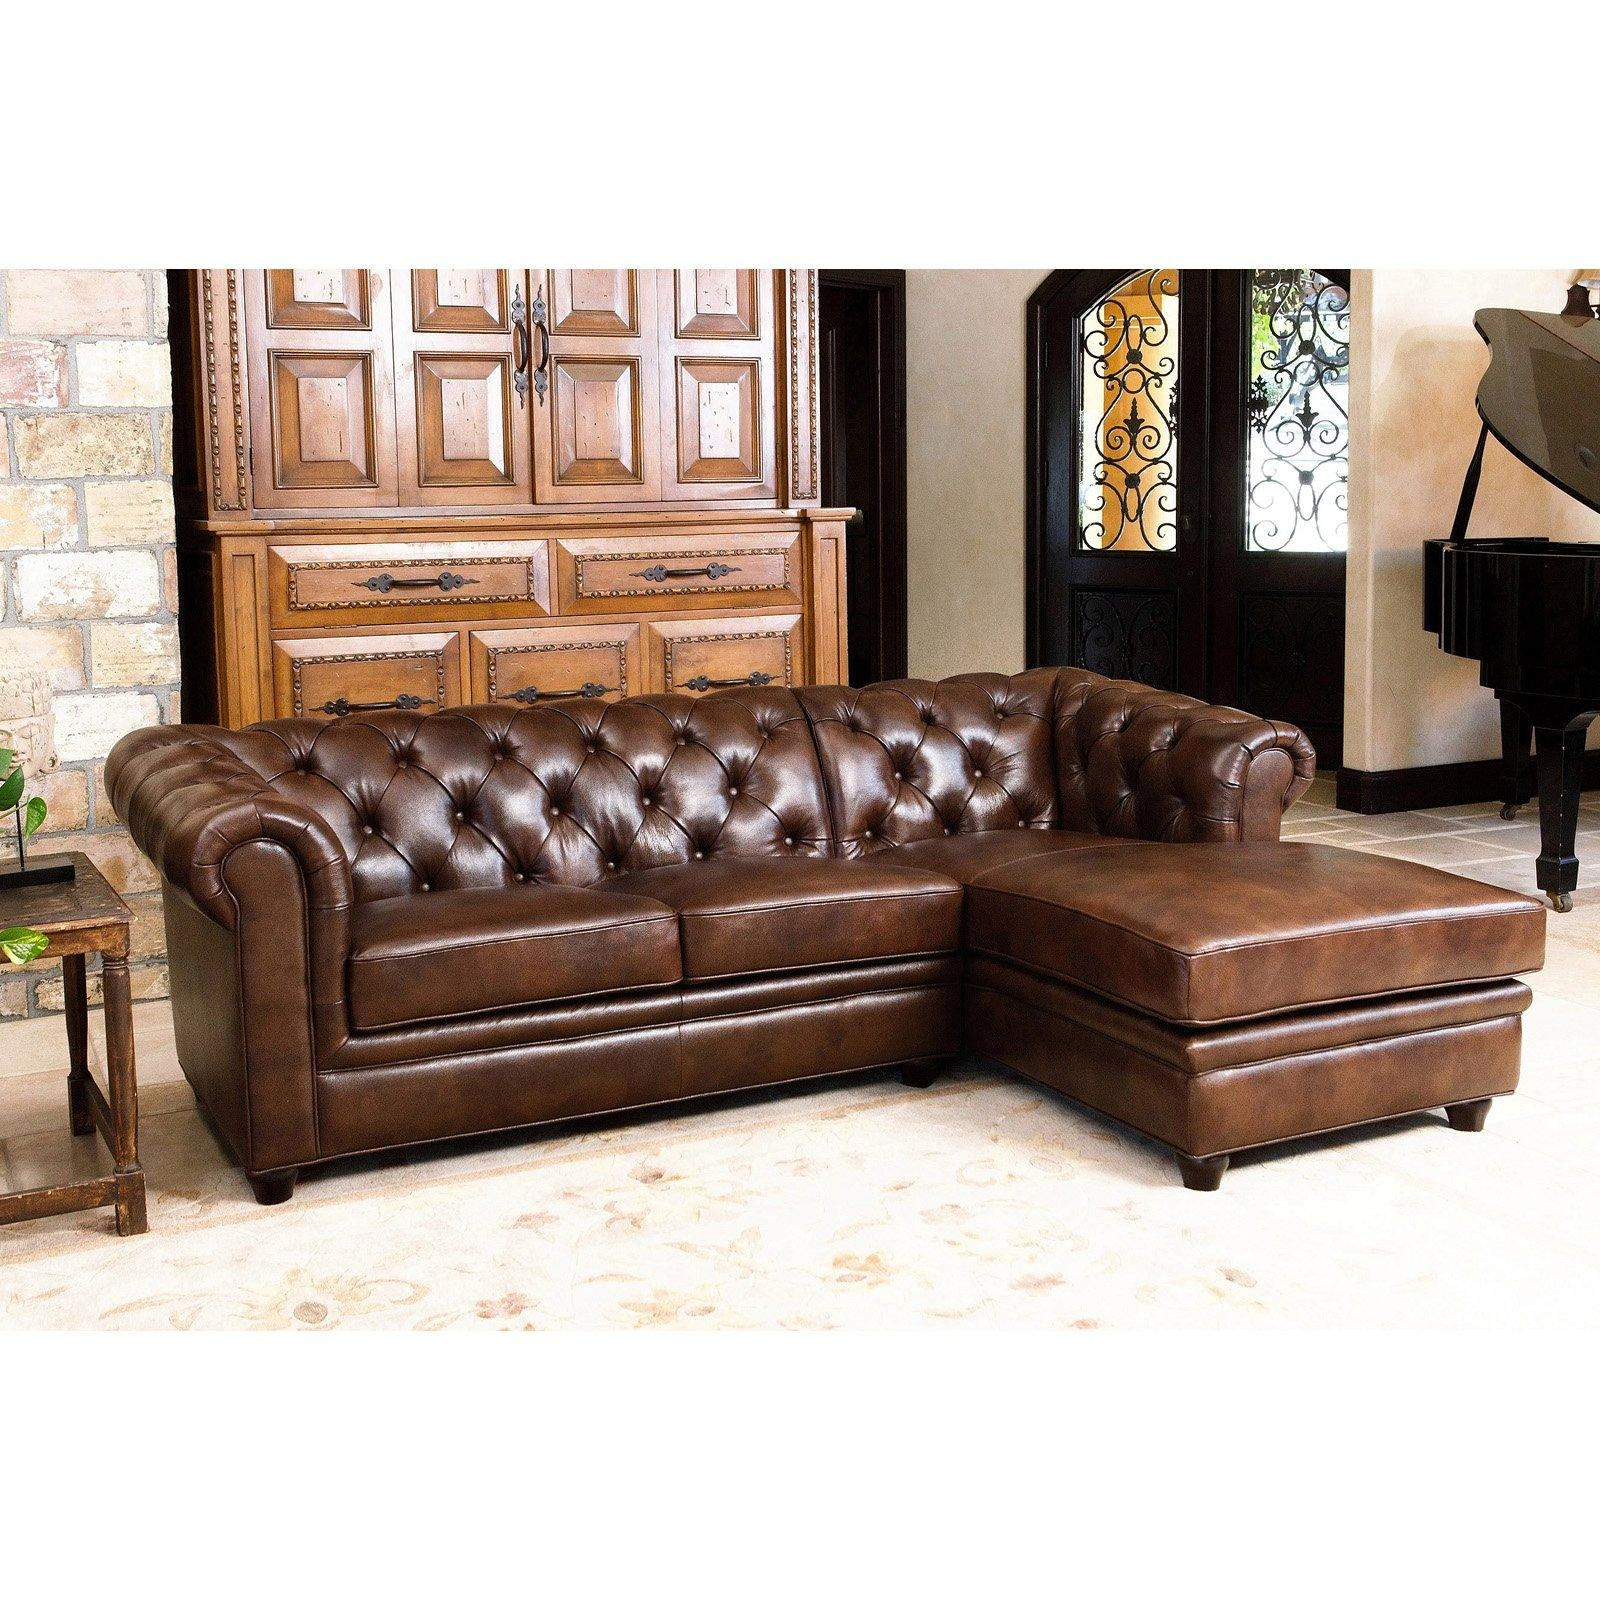 Leather Sectional Sofa Gta: 20 Inspirations Abbyson Sectional Sofas